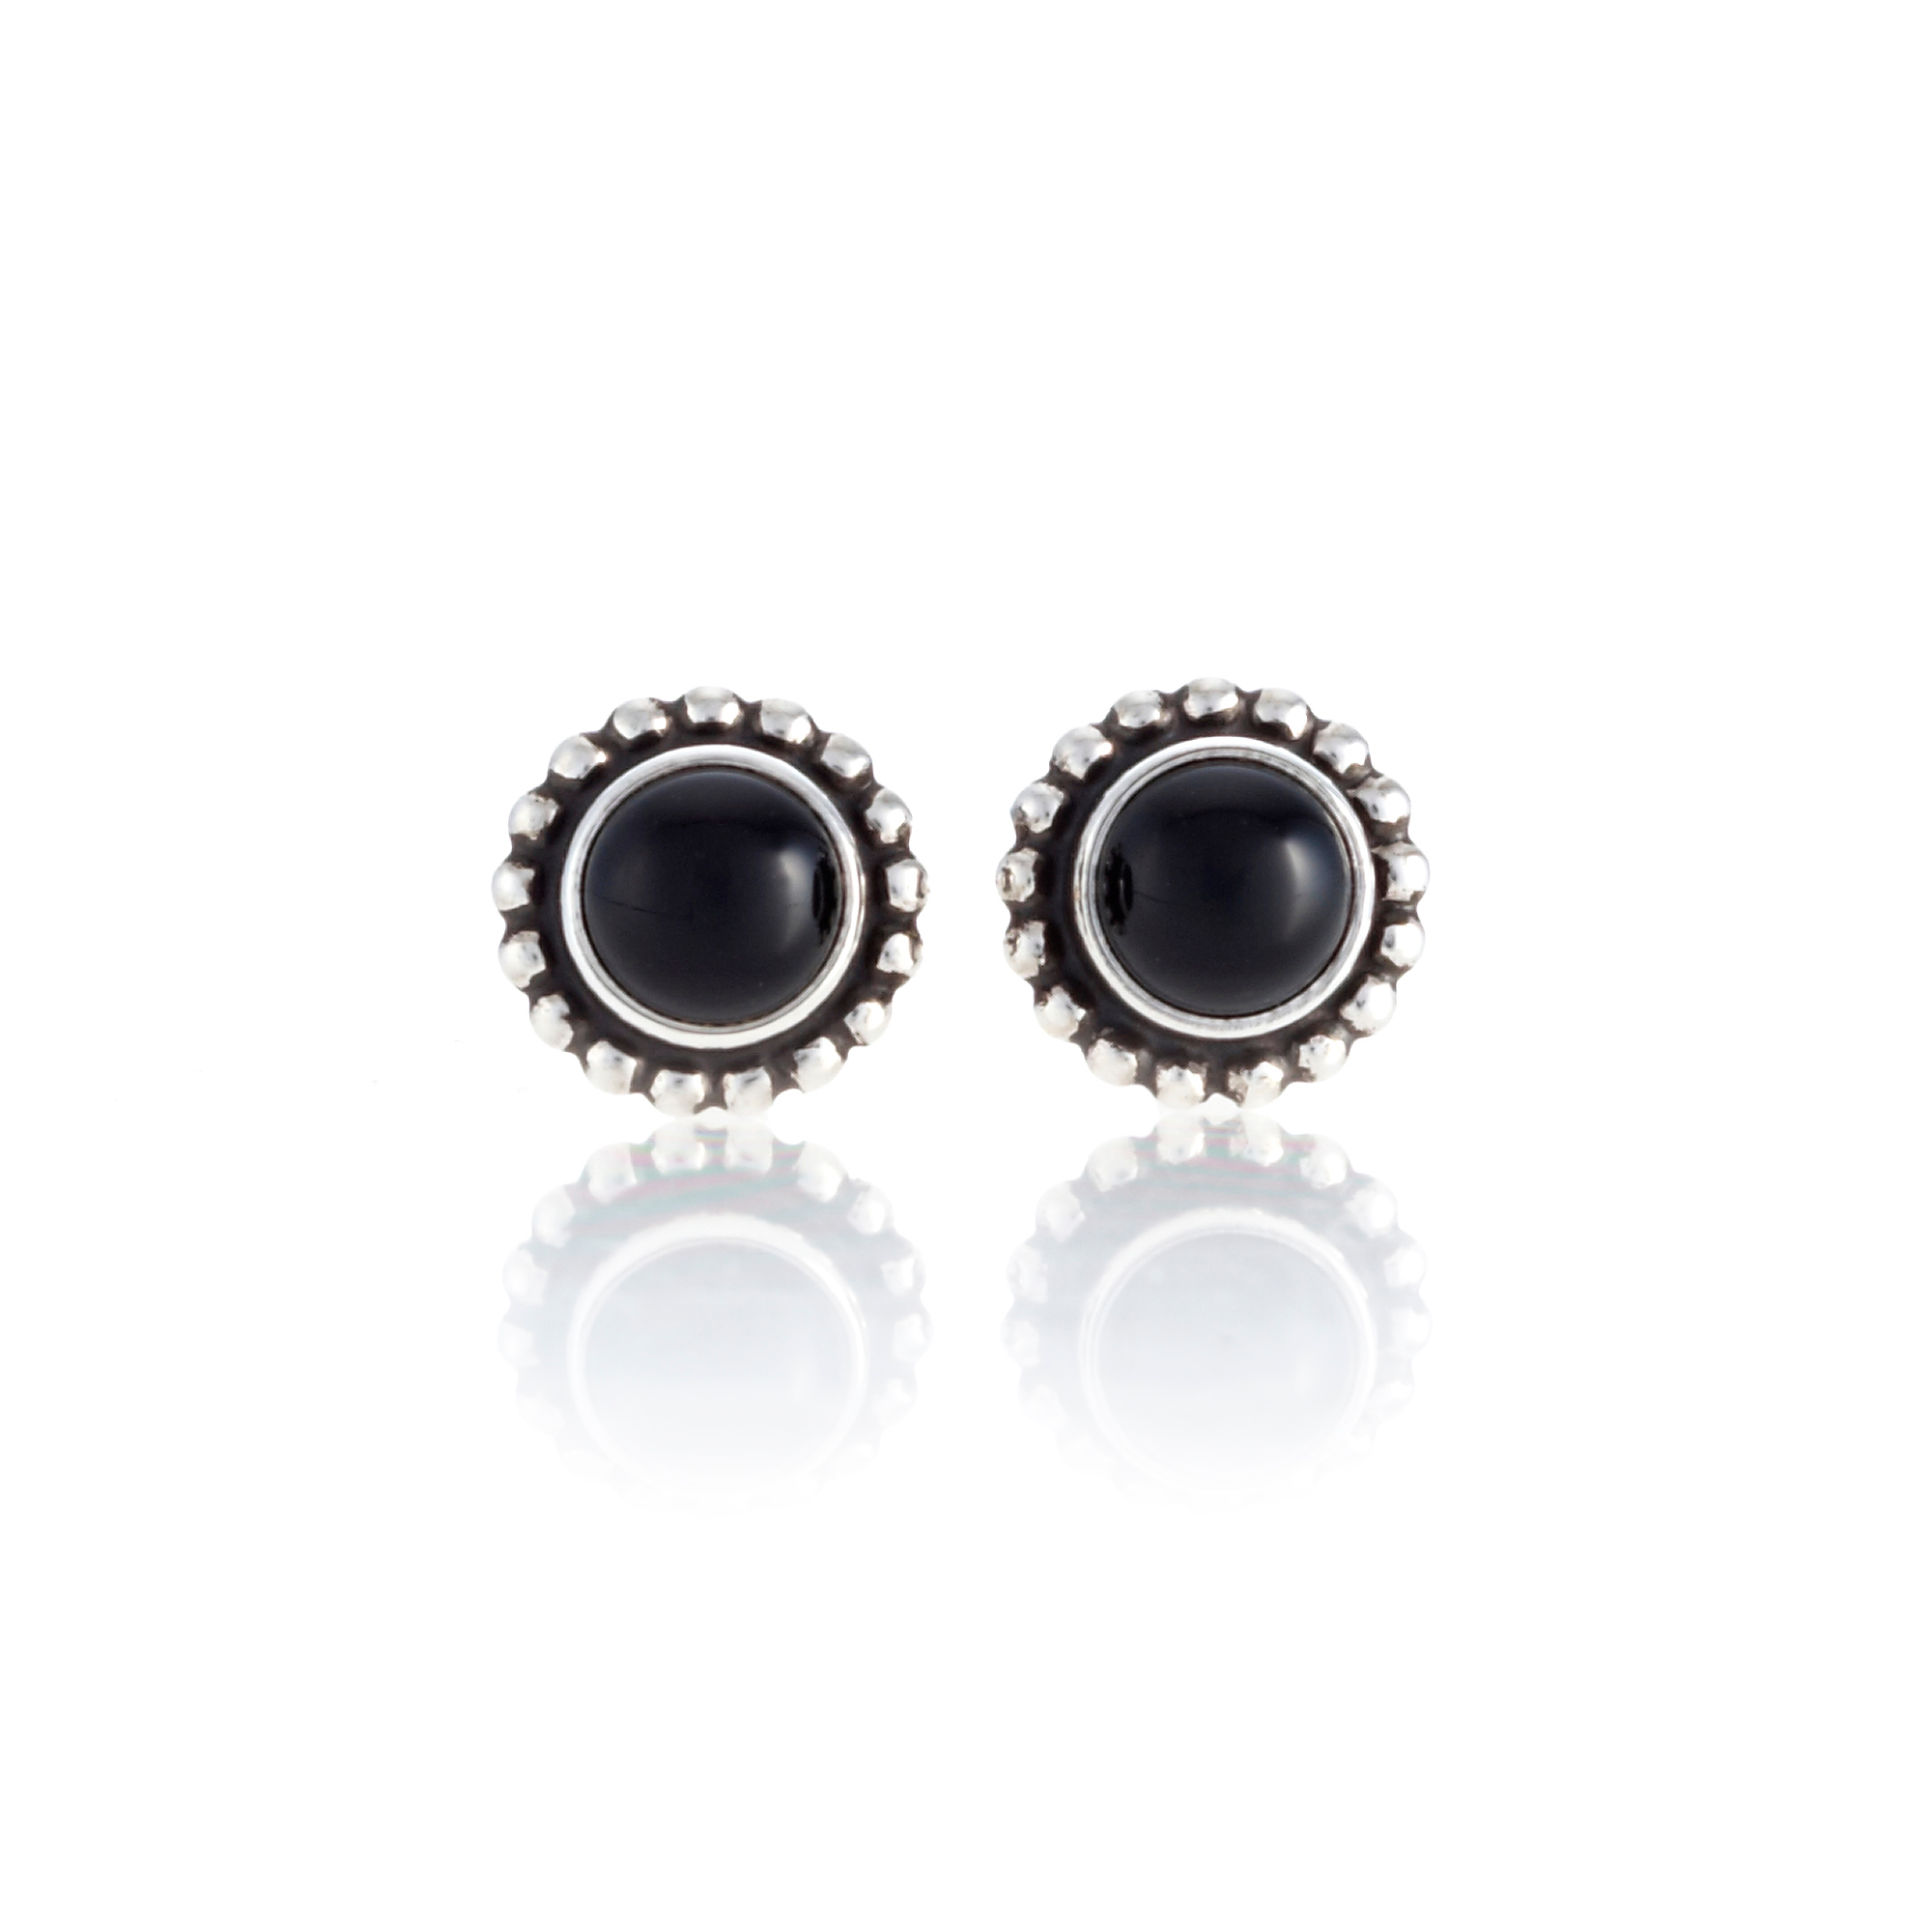 Georg Jensen Moonlight Blossom Black Agate Round Stud Earrings